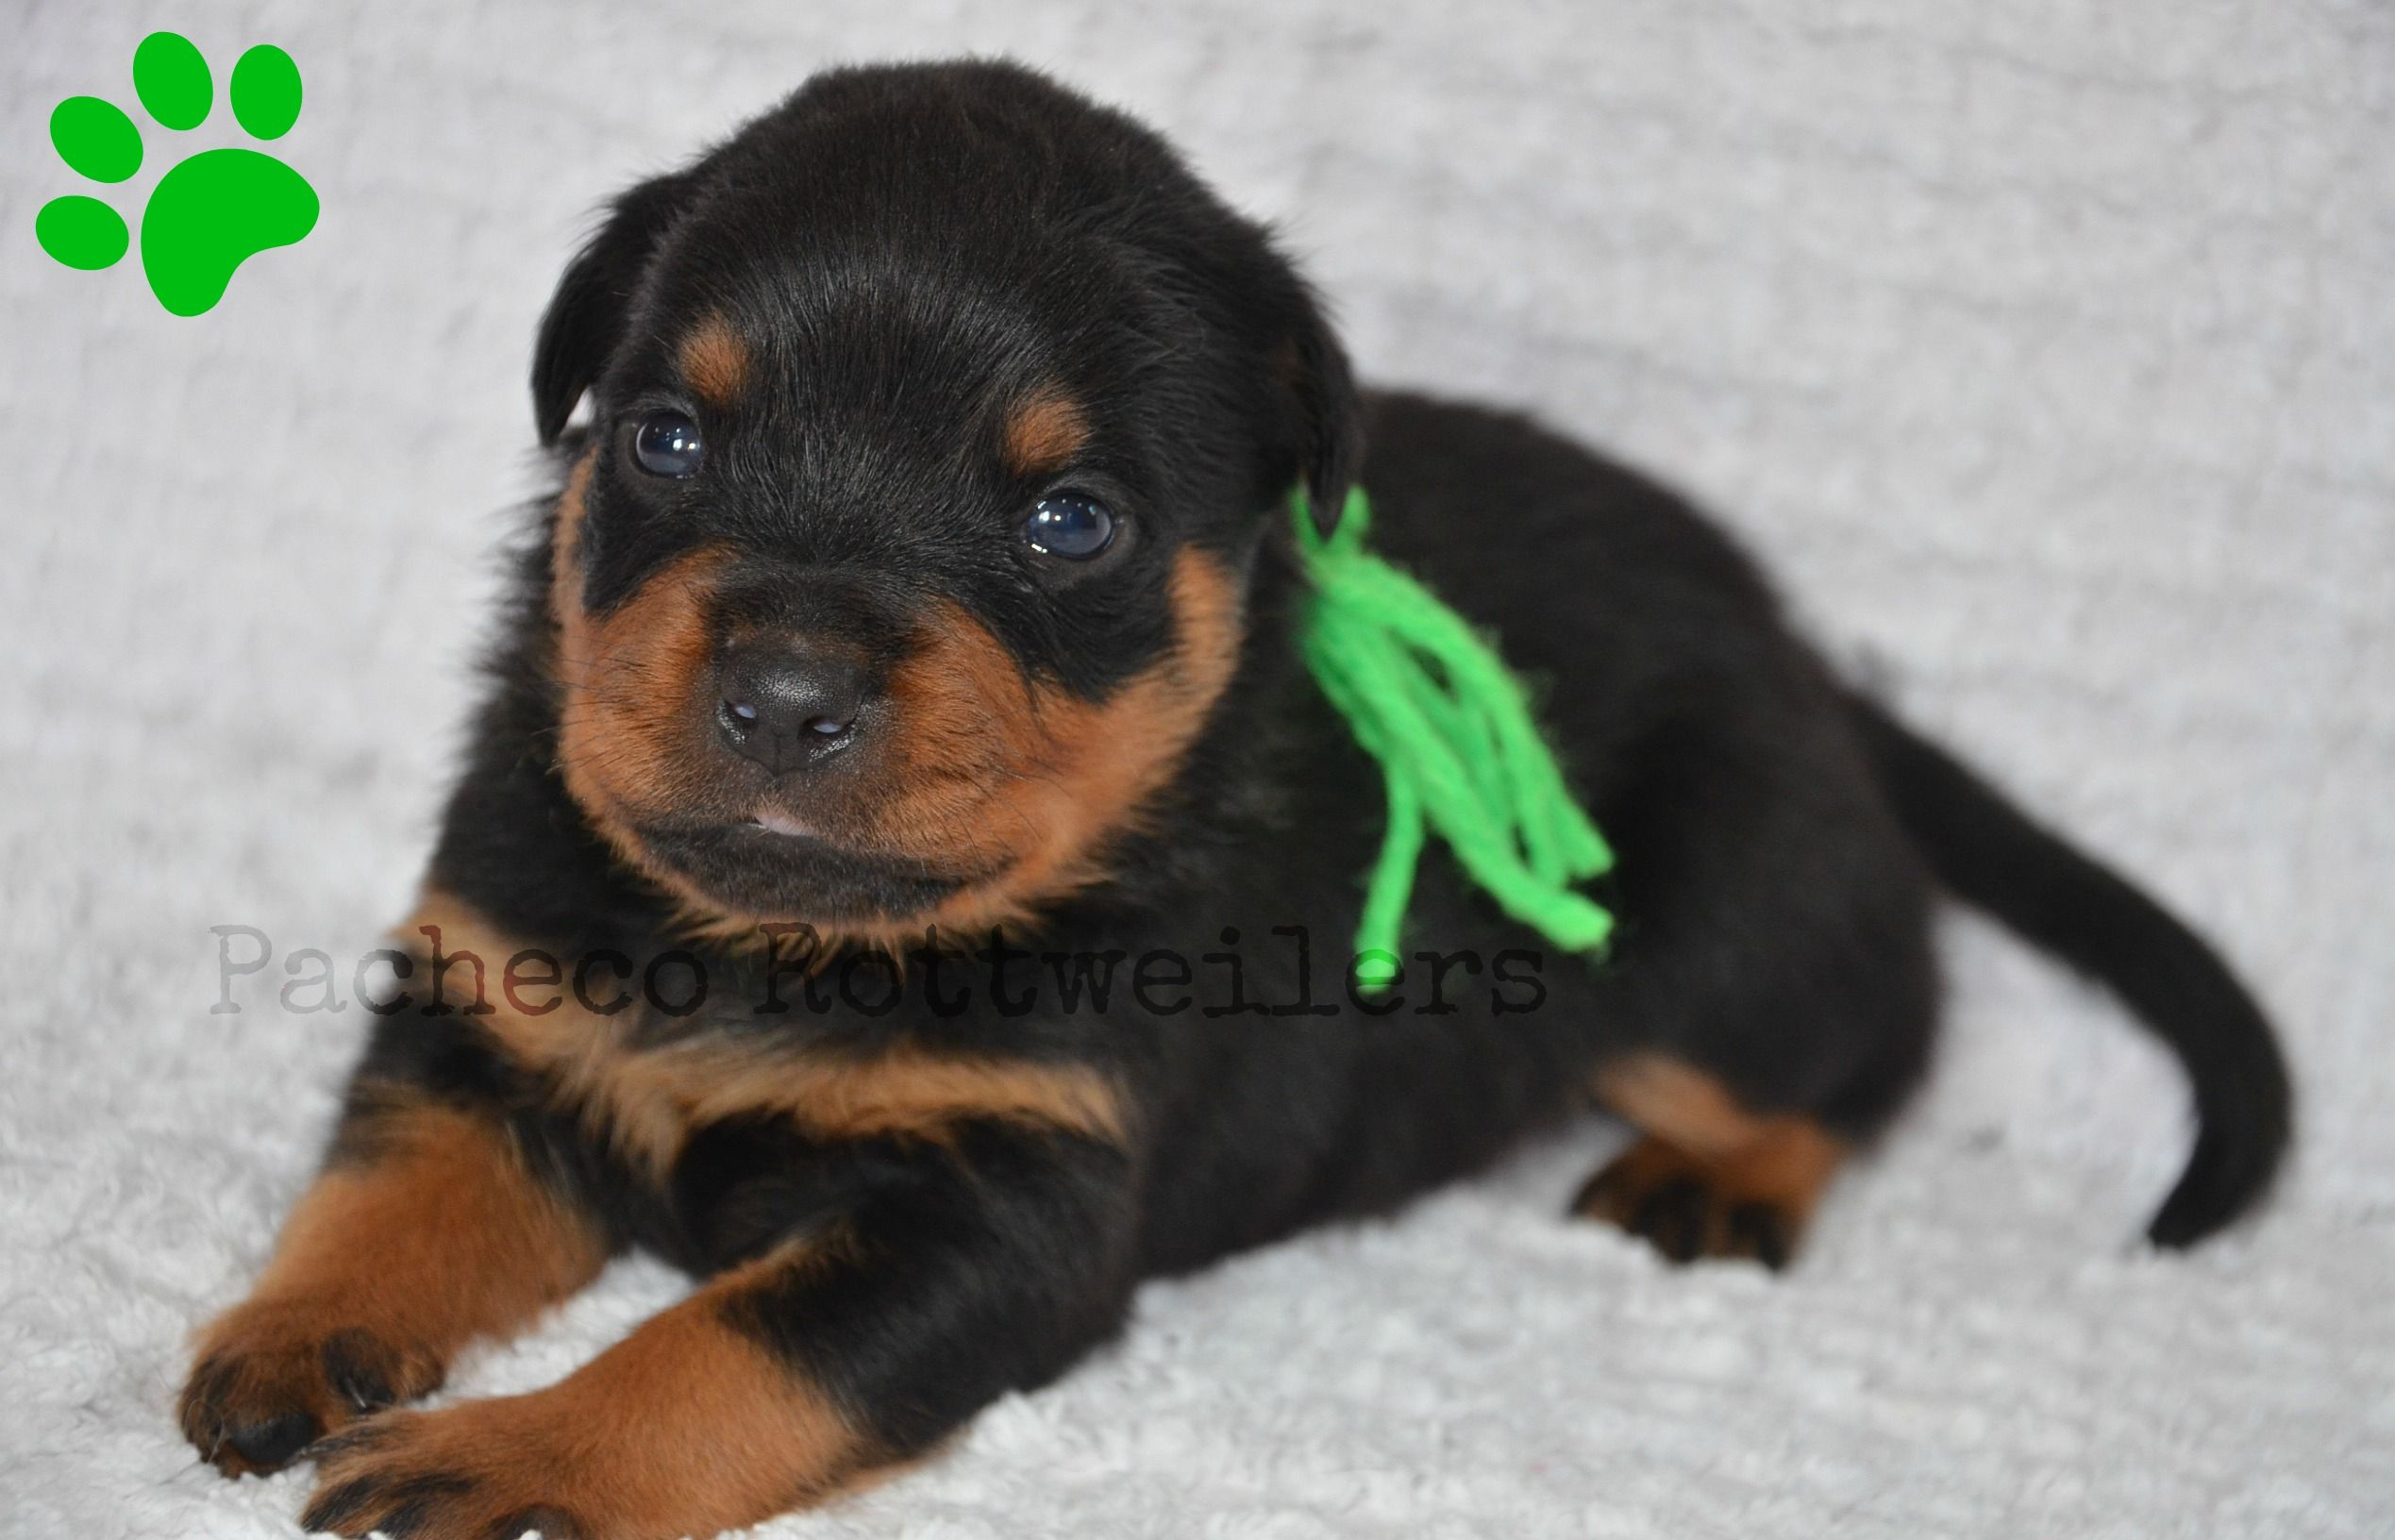 Green Male 2 Weeks Old Such A Handsome Guy Puppies Pets Animals